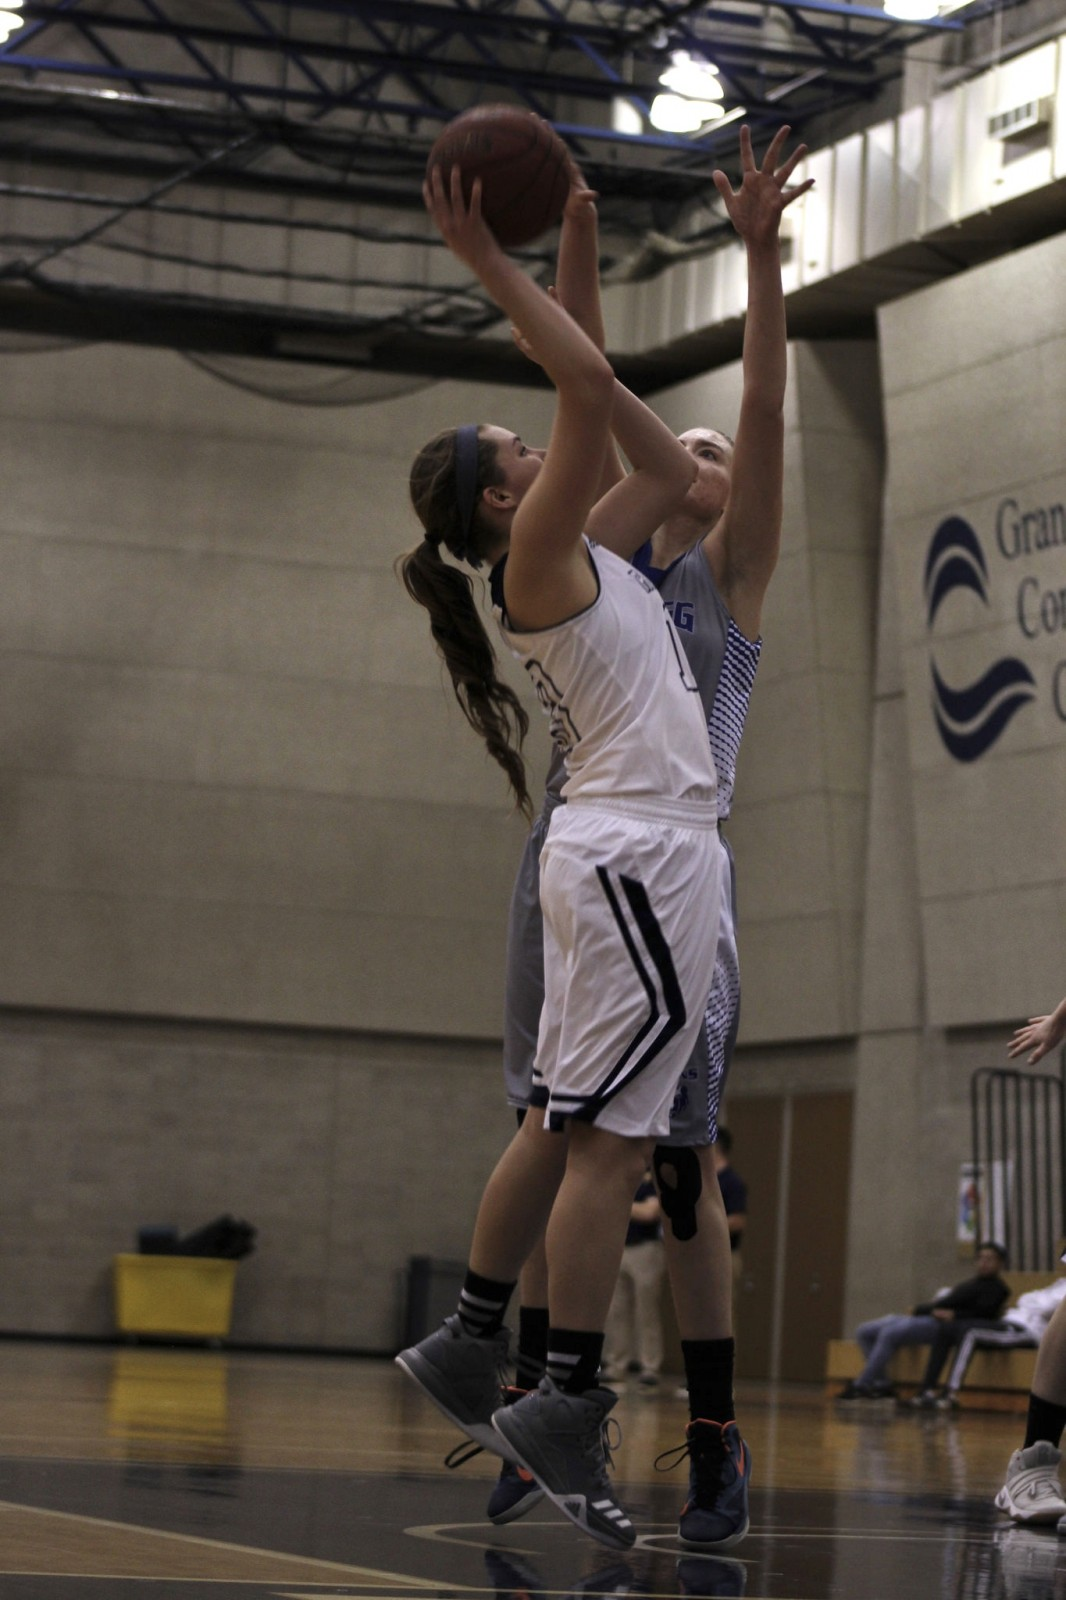 Freshman Guard, #13, Josie Manion going up for the contested layup.